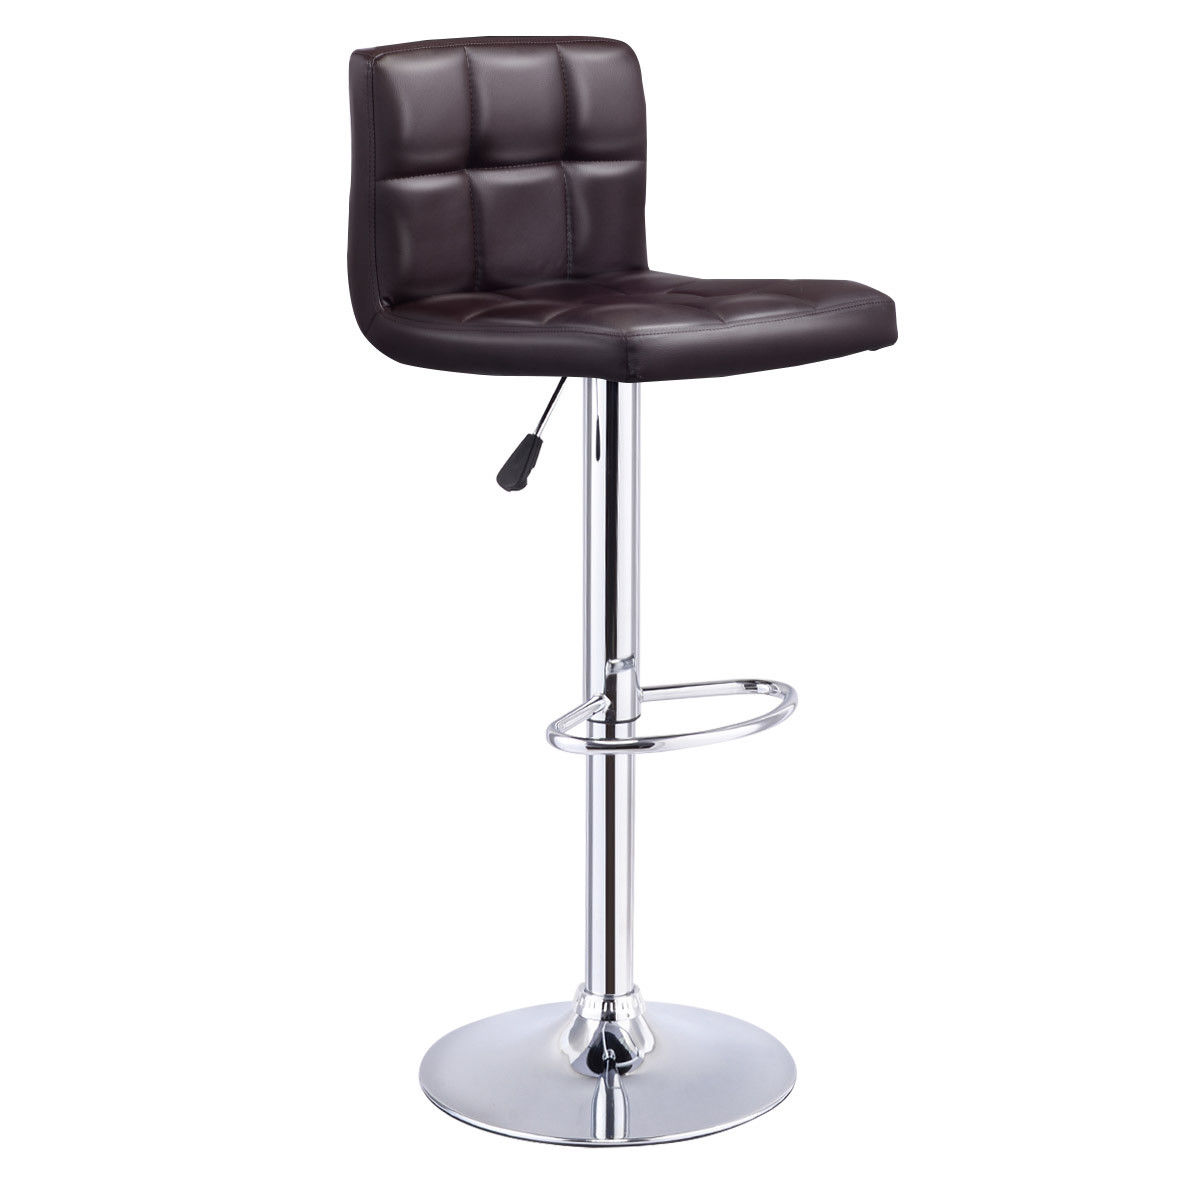 Giantex Modern Bar Stool Swivel Adjustable PU Leather Barstools Bistro Pub  Chair Rotating Home Bar Furniture HW53843BN In Bar Stools From Furniture On  ...